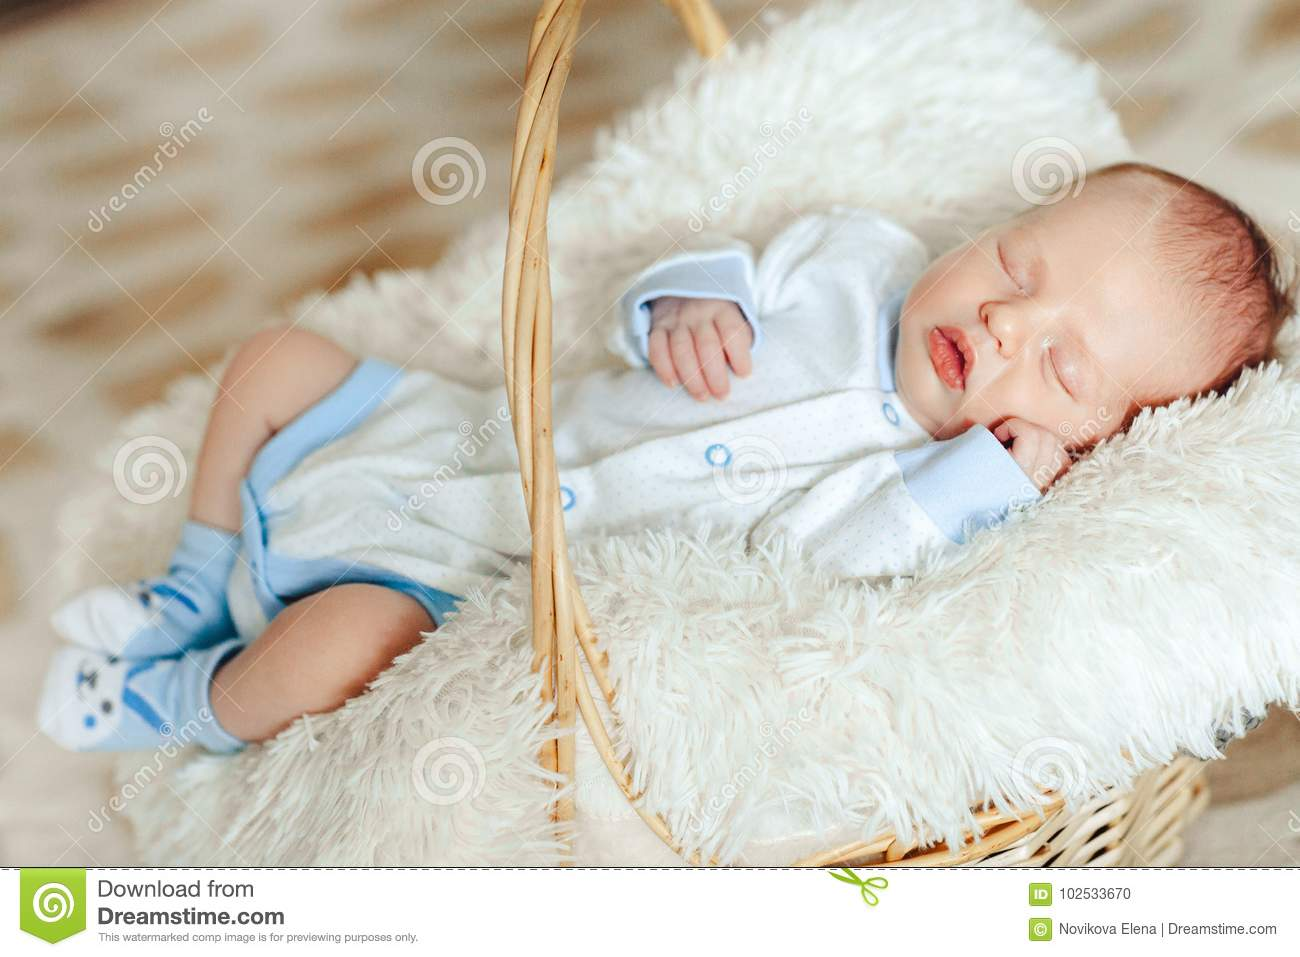 cb63b44d1 Lovely Sleeping Newborn Boy Is Dressed In Overalls And Booties Lies ...